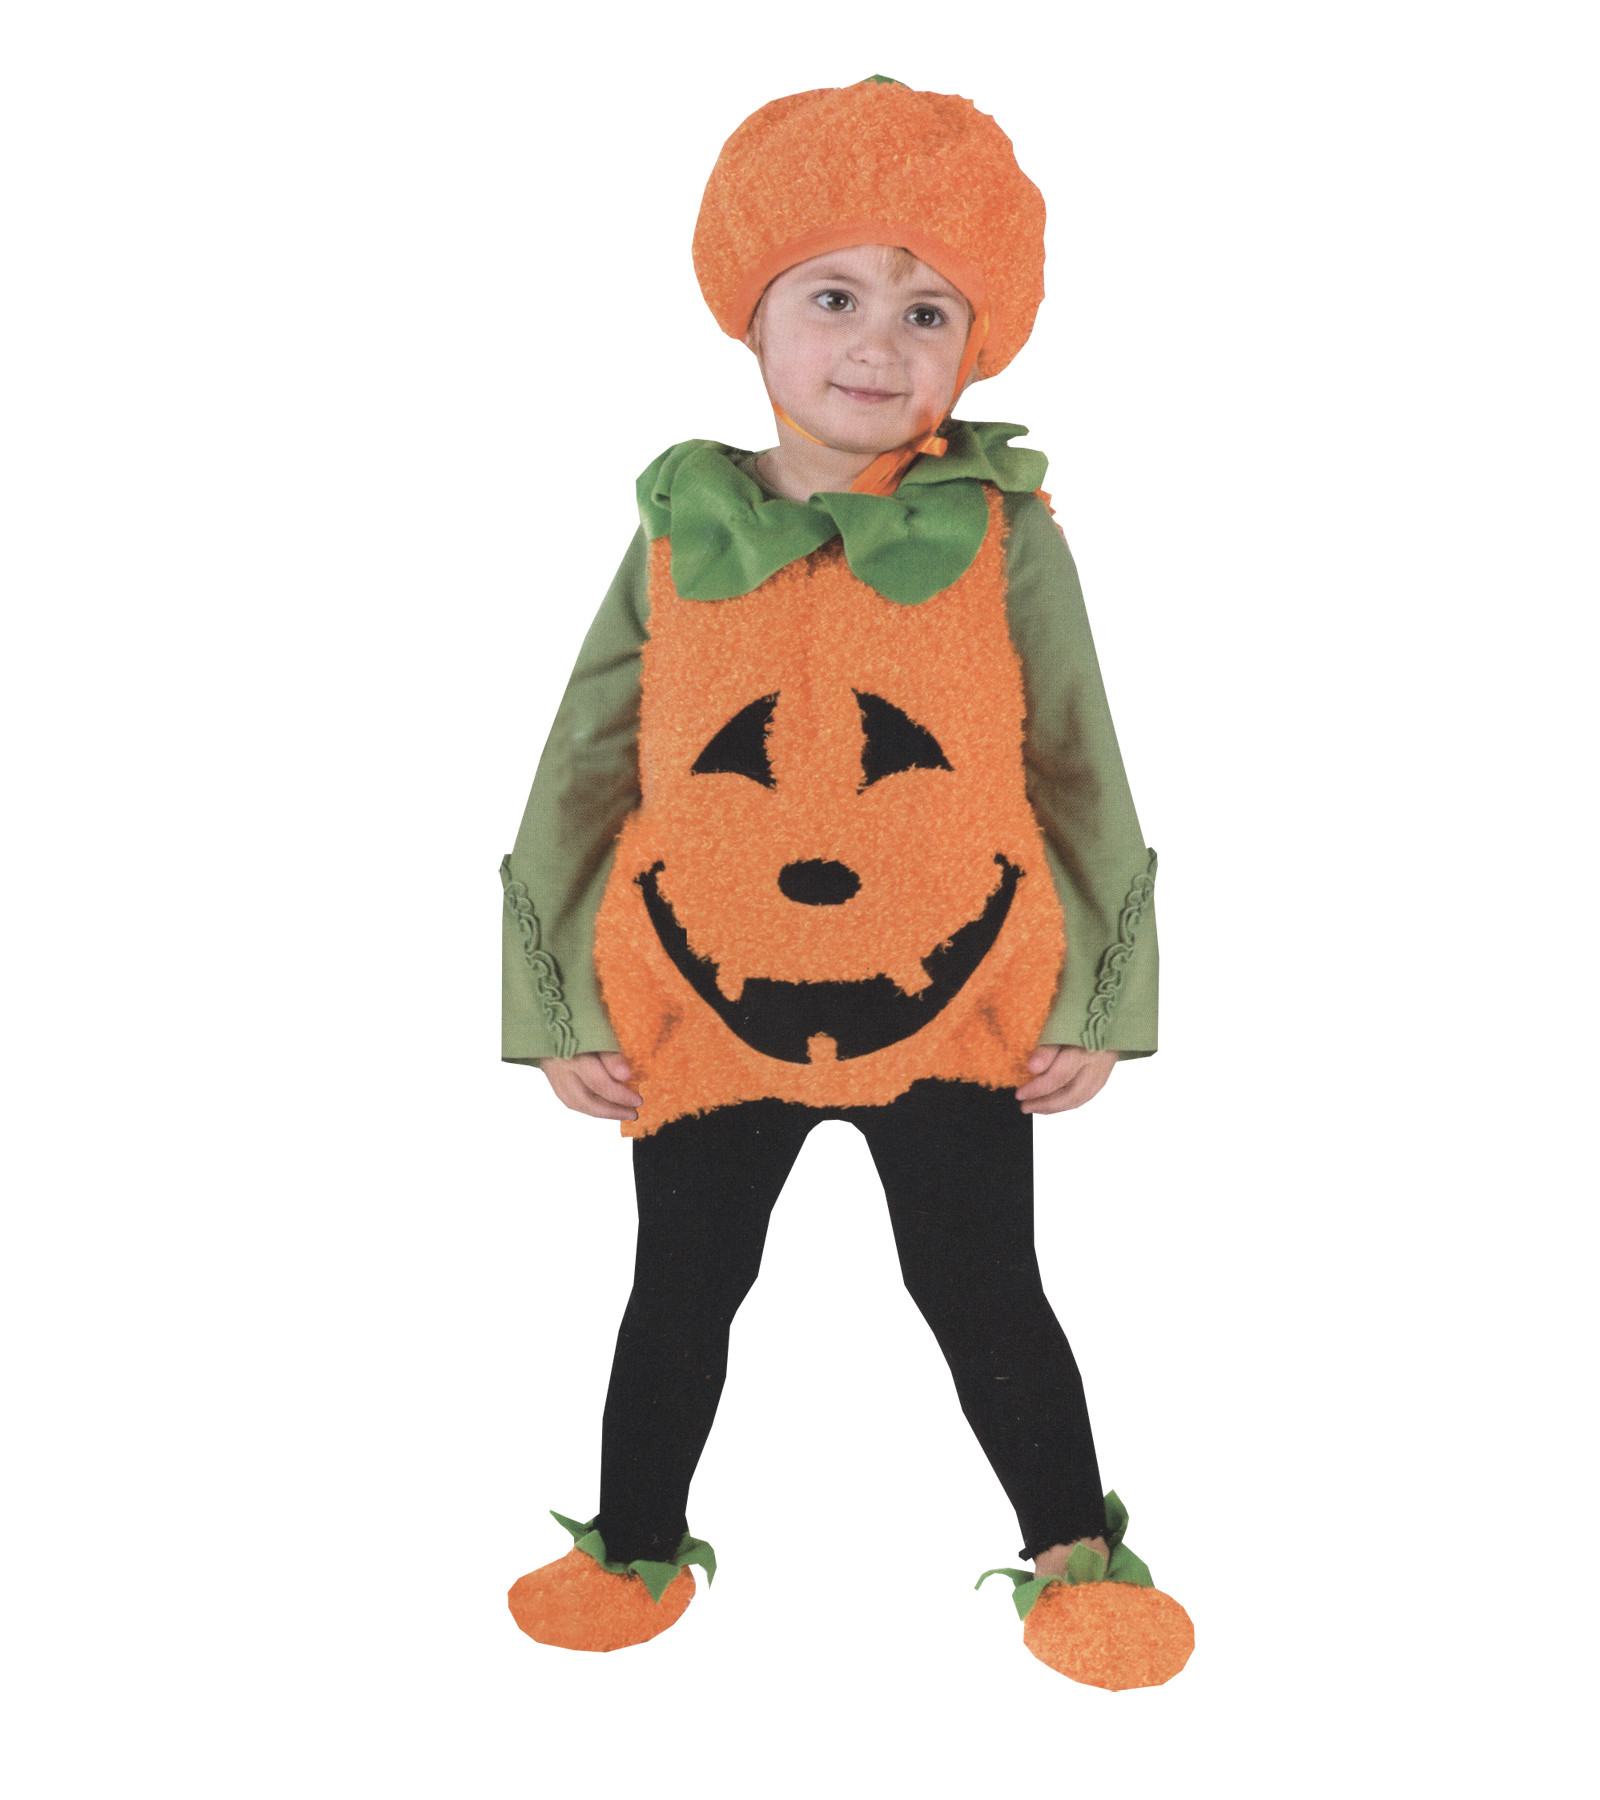 Pumpkin Pie Halloween Costume  Infant Pumpkin Cutie Pie Halloween Costume Size 1T 2T